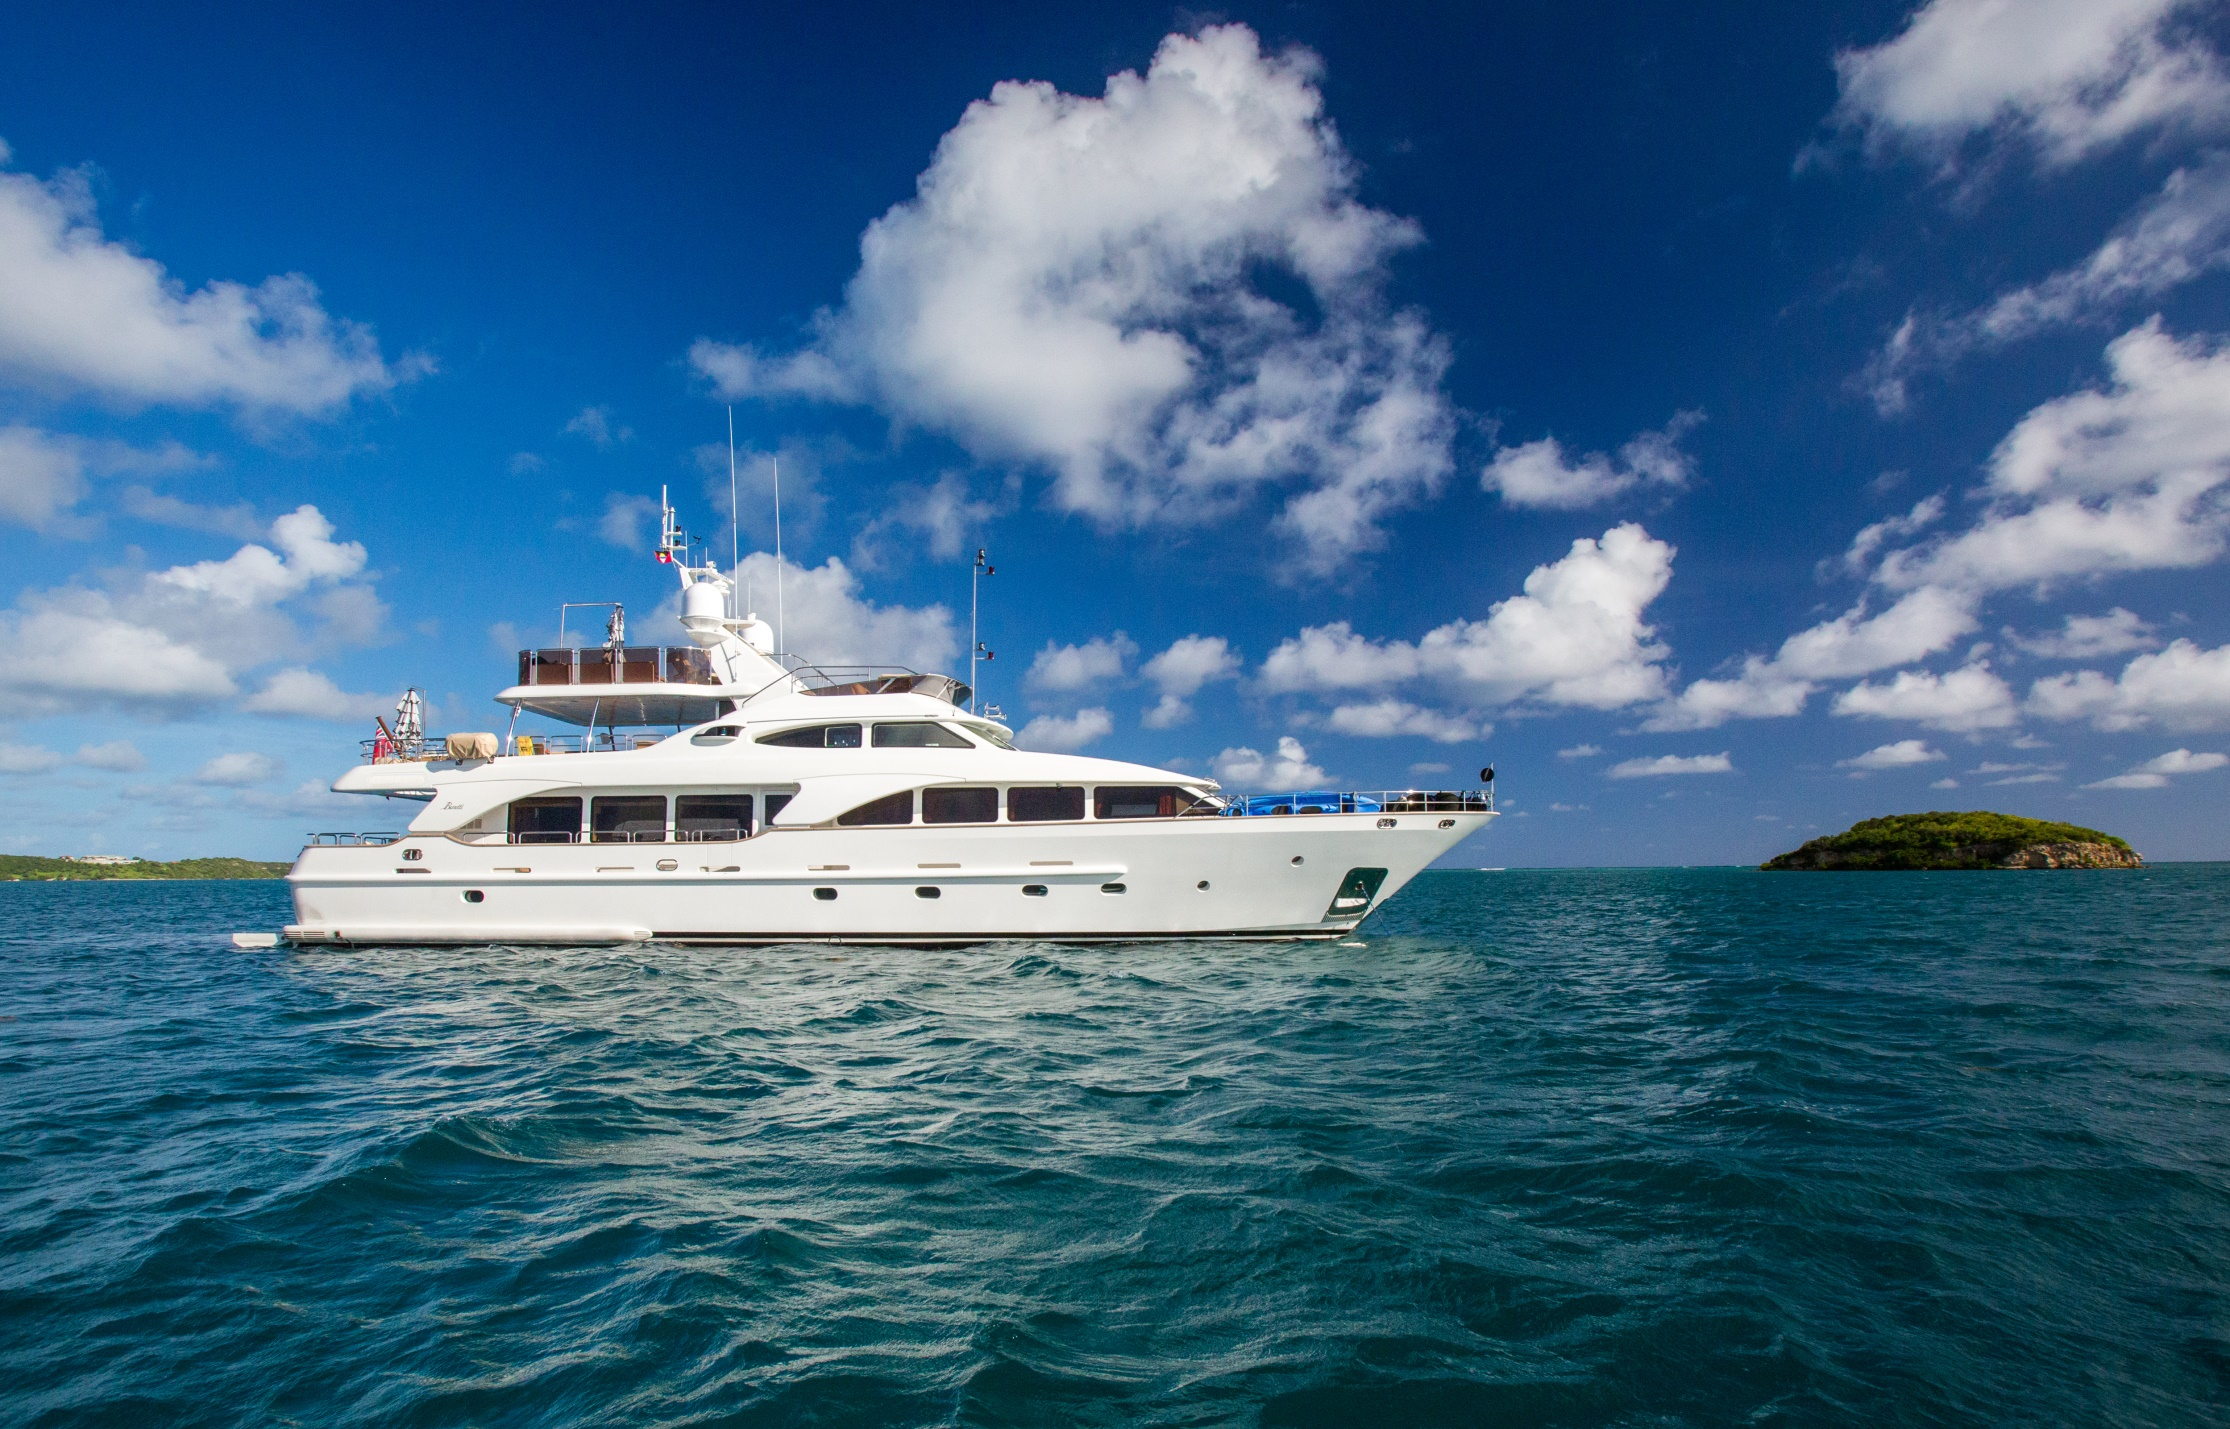 JAZZ motor yacht profile